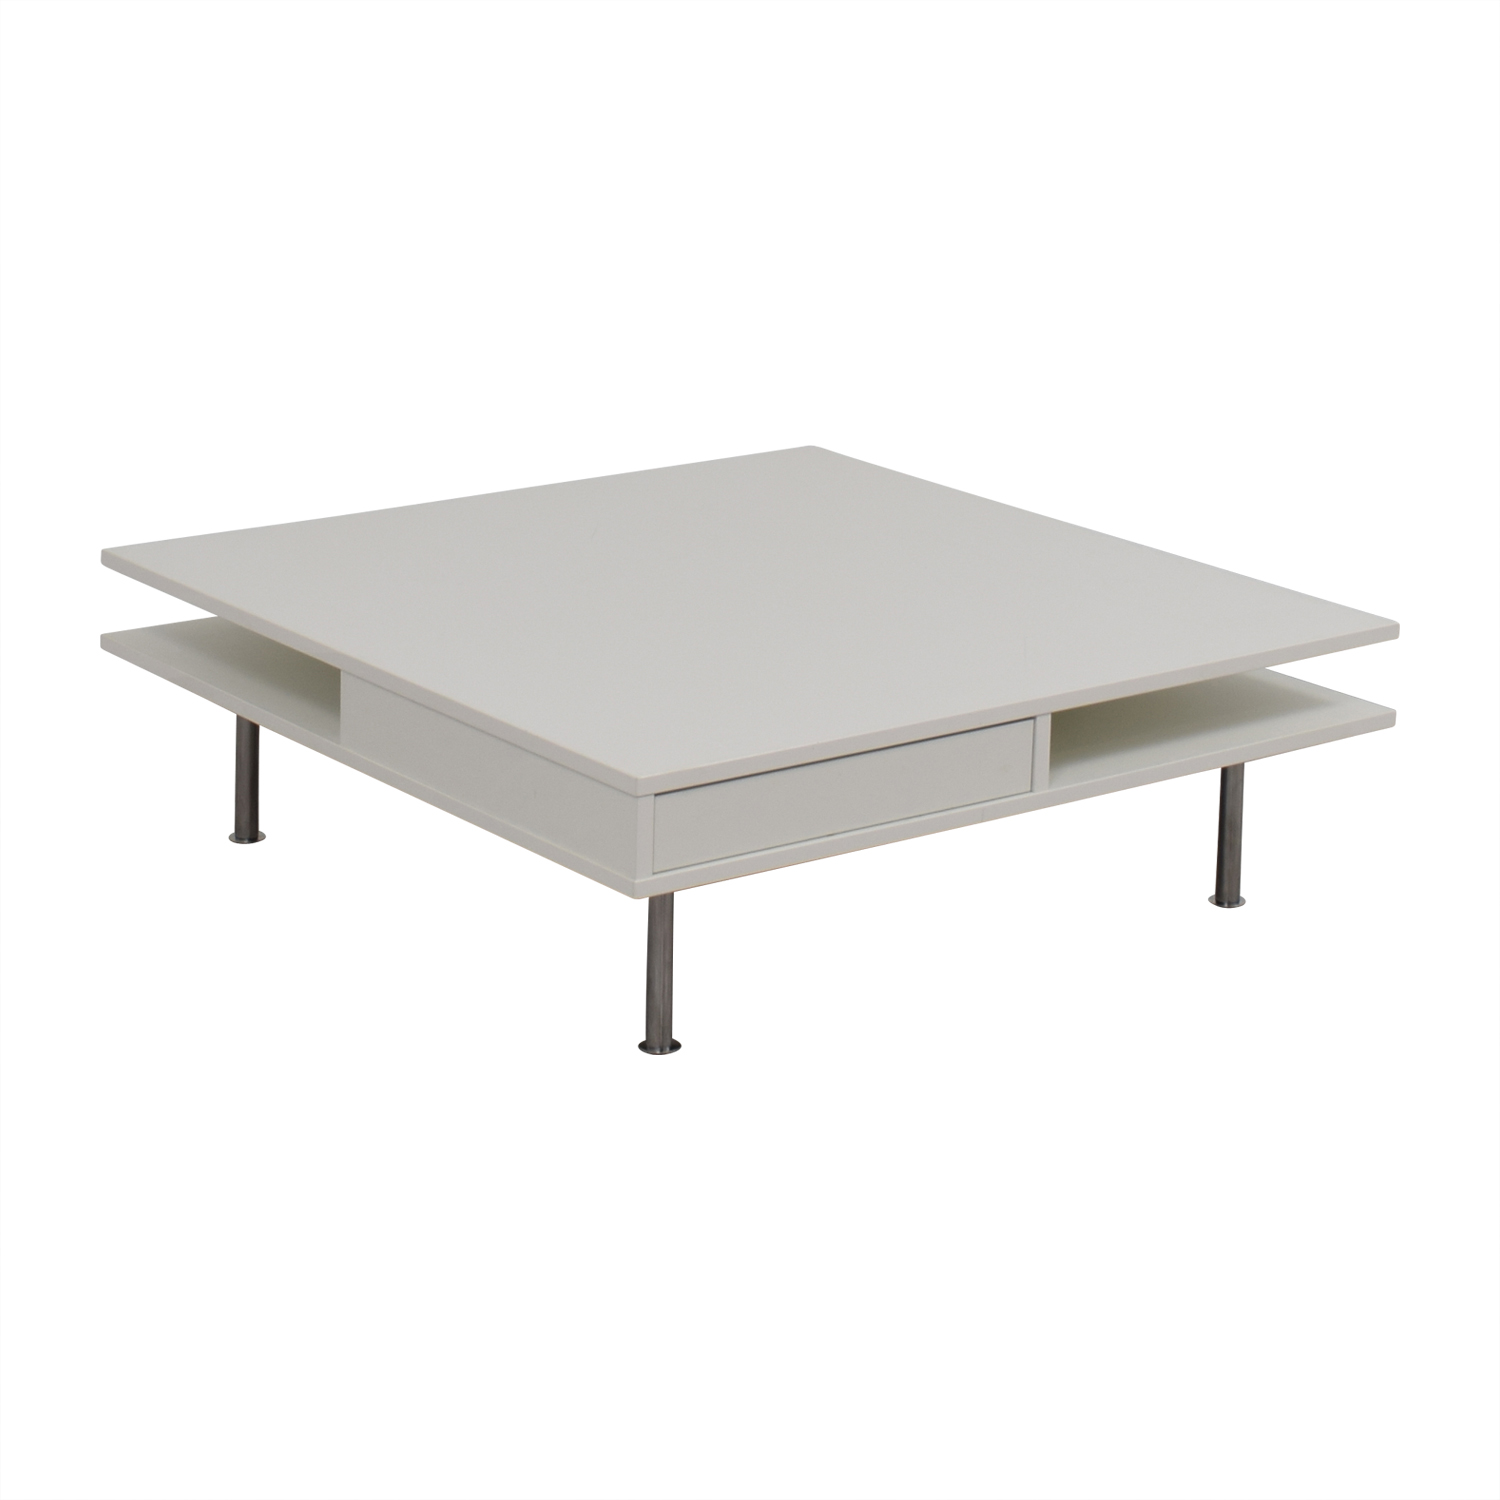 67 Off White Modern Coffee Table Tables